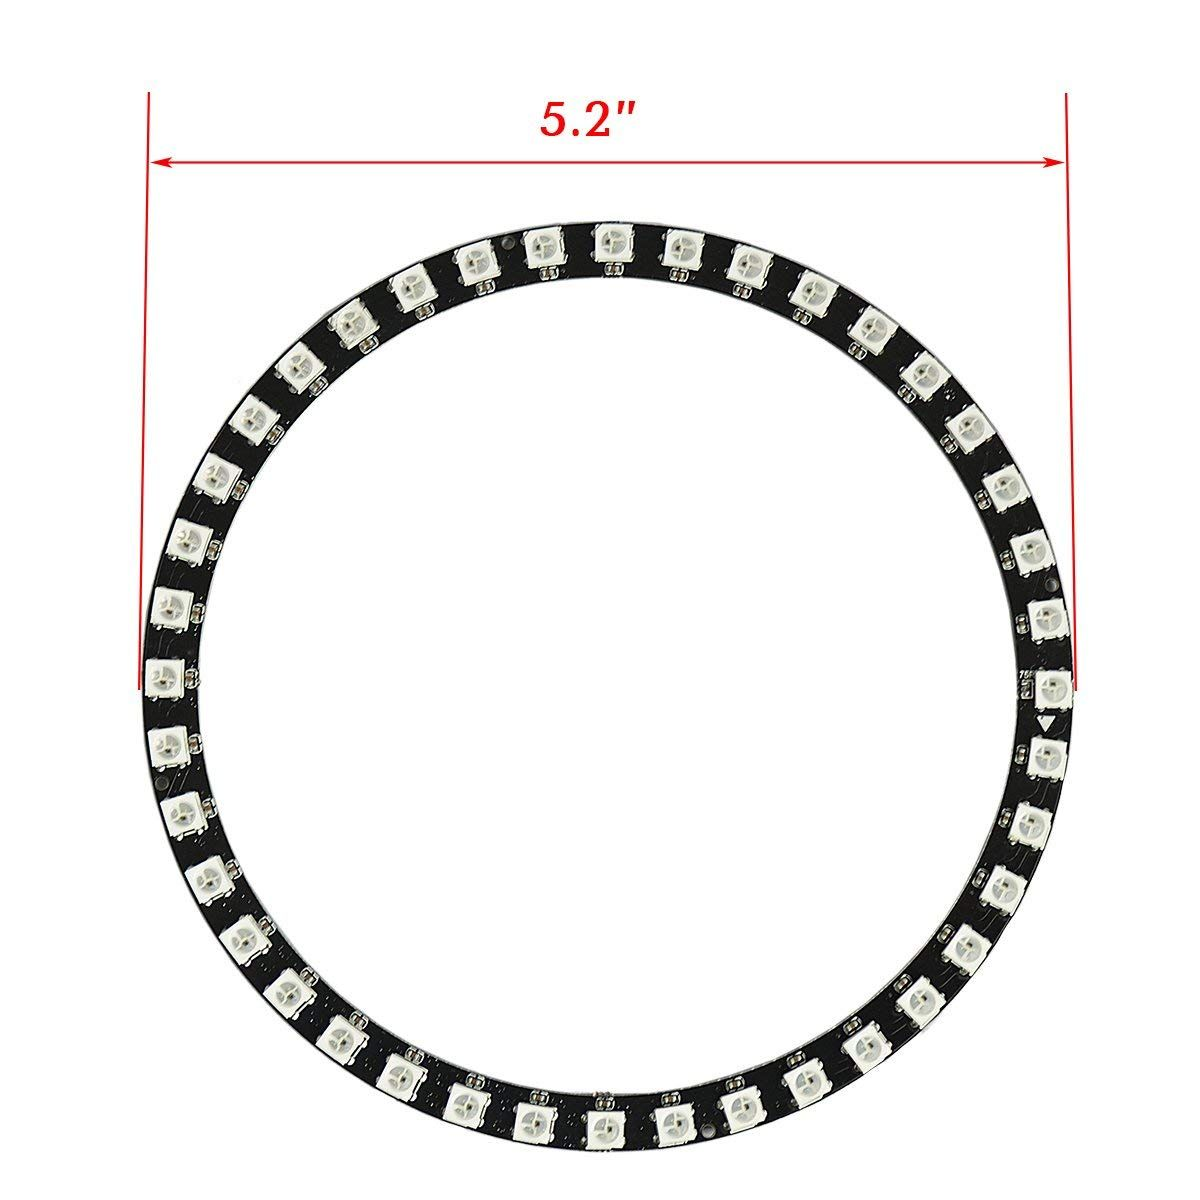 16 Bits 16 X WS2812 5050 RGB LED Ring Lamp Light with Integrated Drivers DIYmall